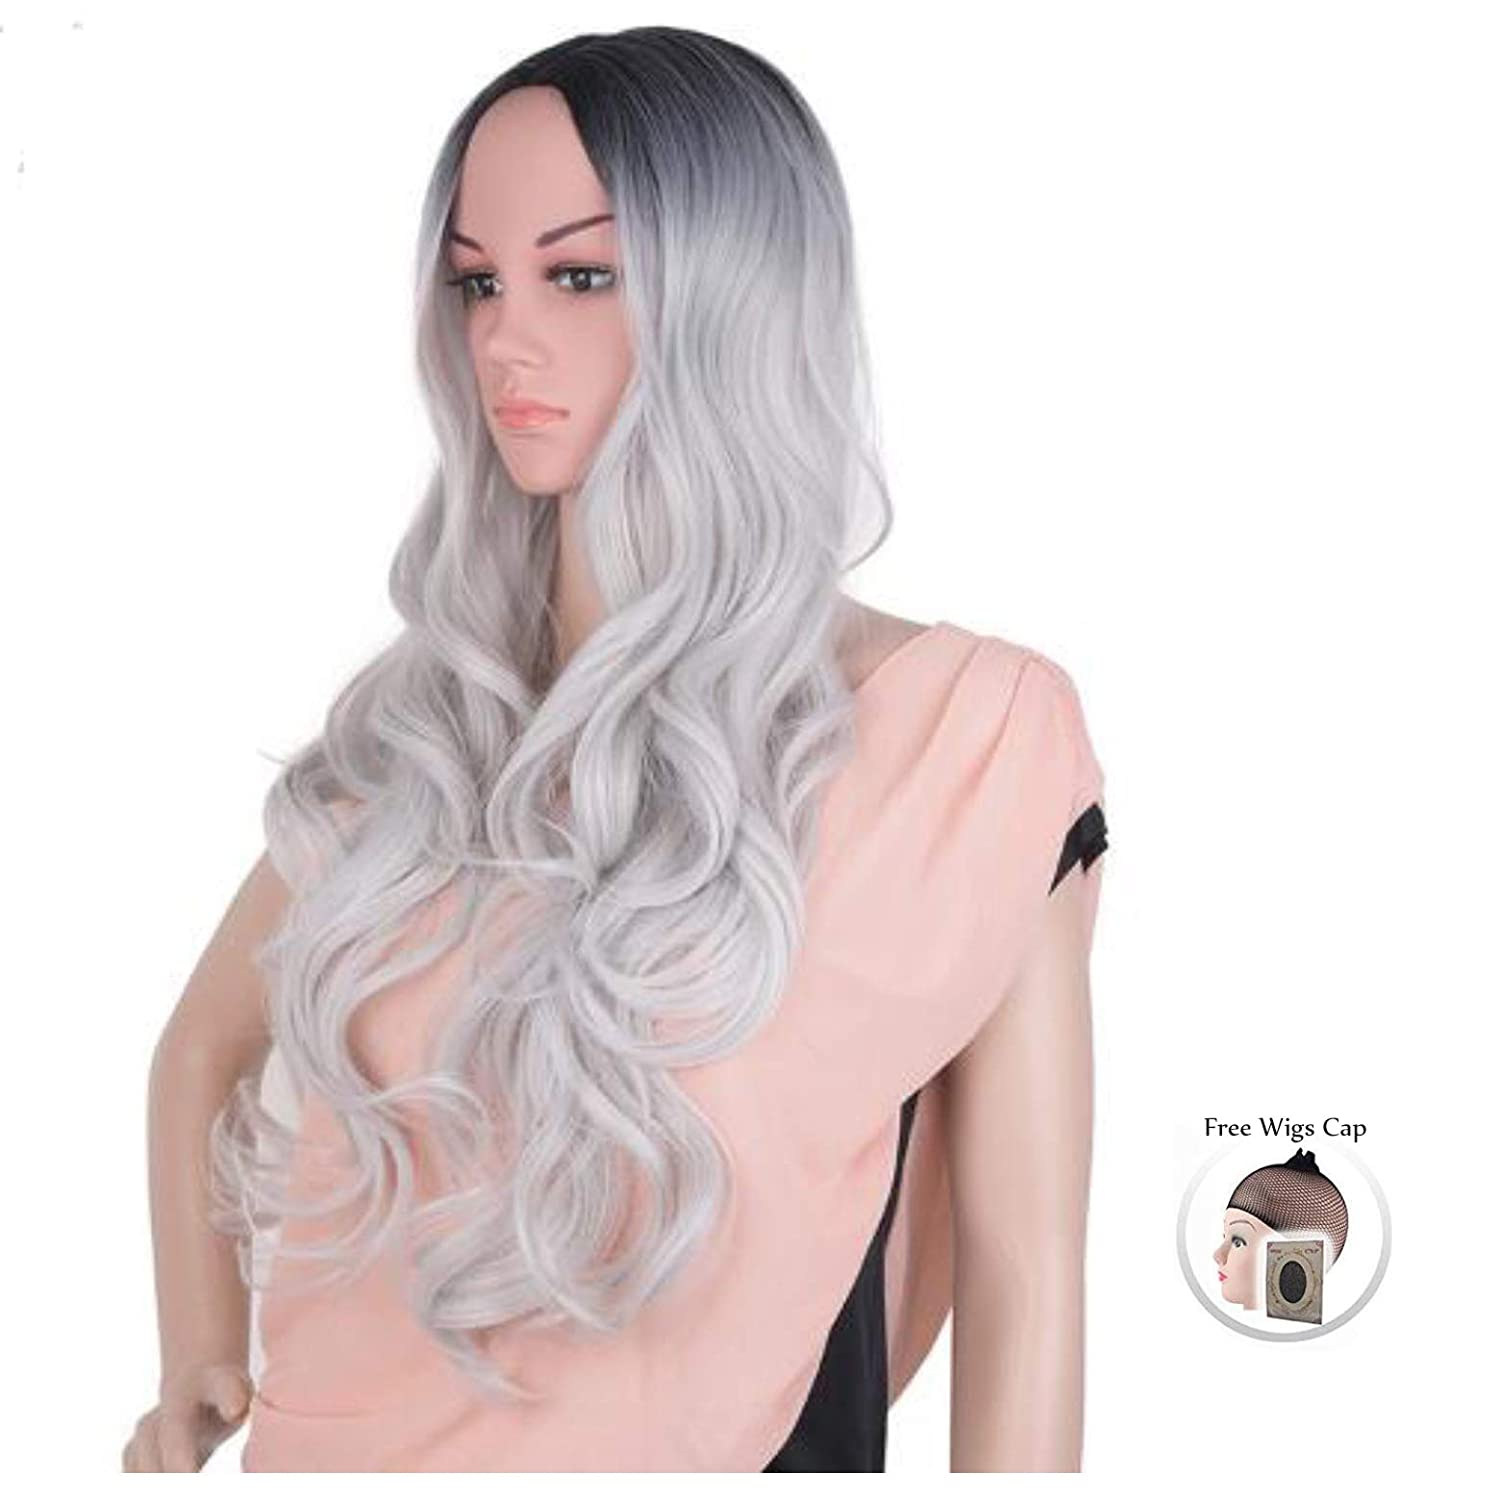 Hair Wigs for Women, Image Gradient Color Hair Extensions,26 Long Full Curly Wavy Glamour black to grey Wig with Wig Cap for the party